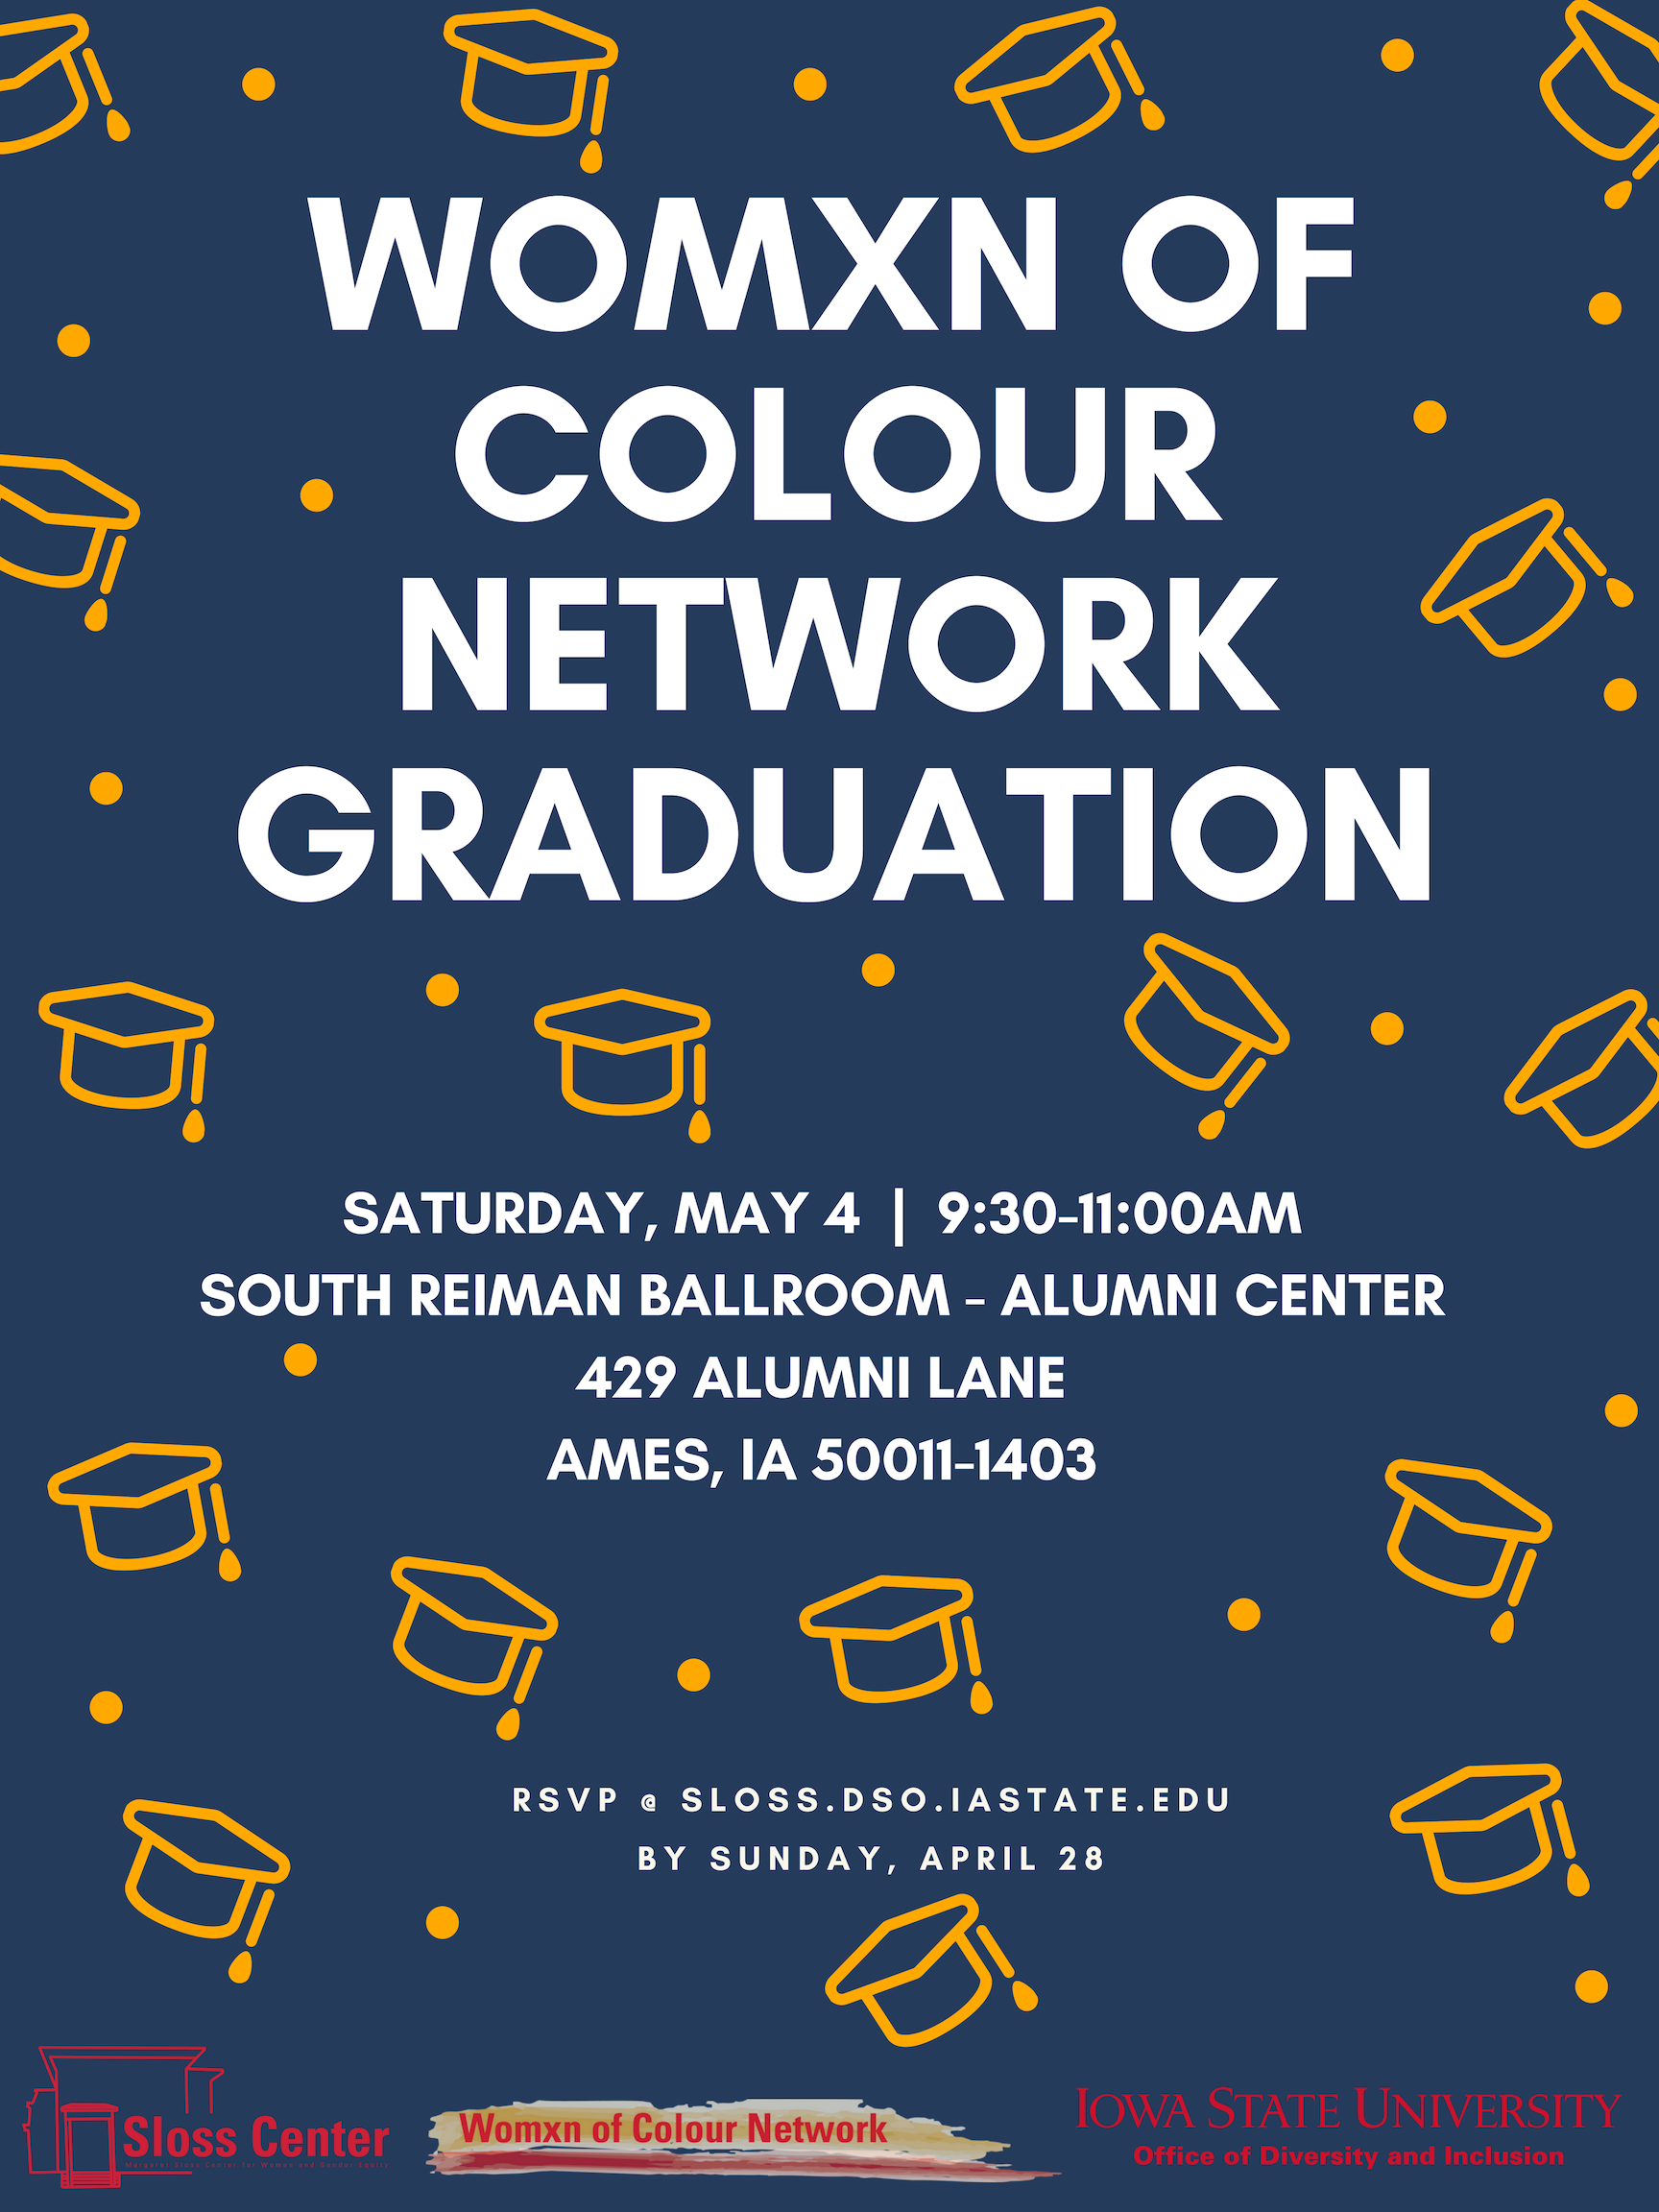 Graphic of: Womxn of Colour Network Graduation on May 4 from 9:30-11:00am at the Alumni Center